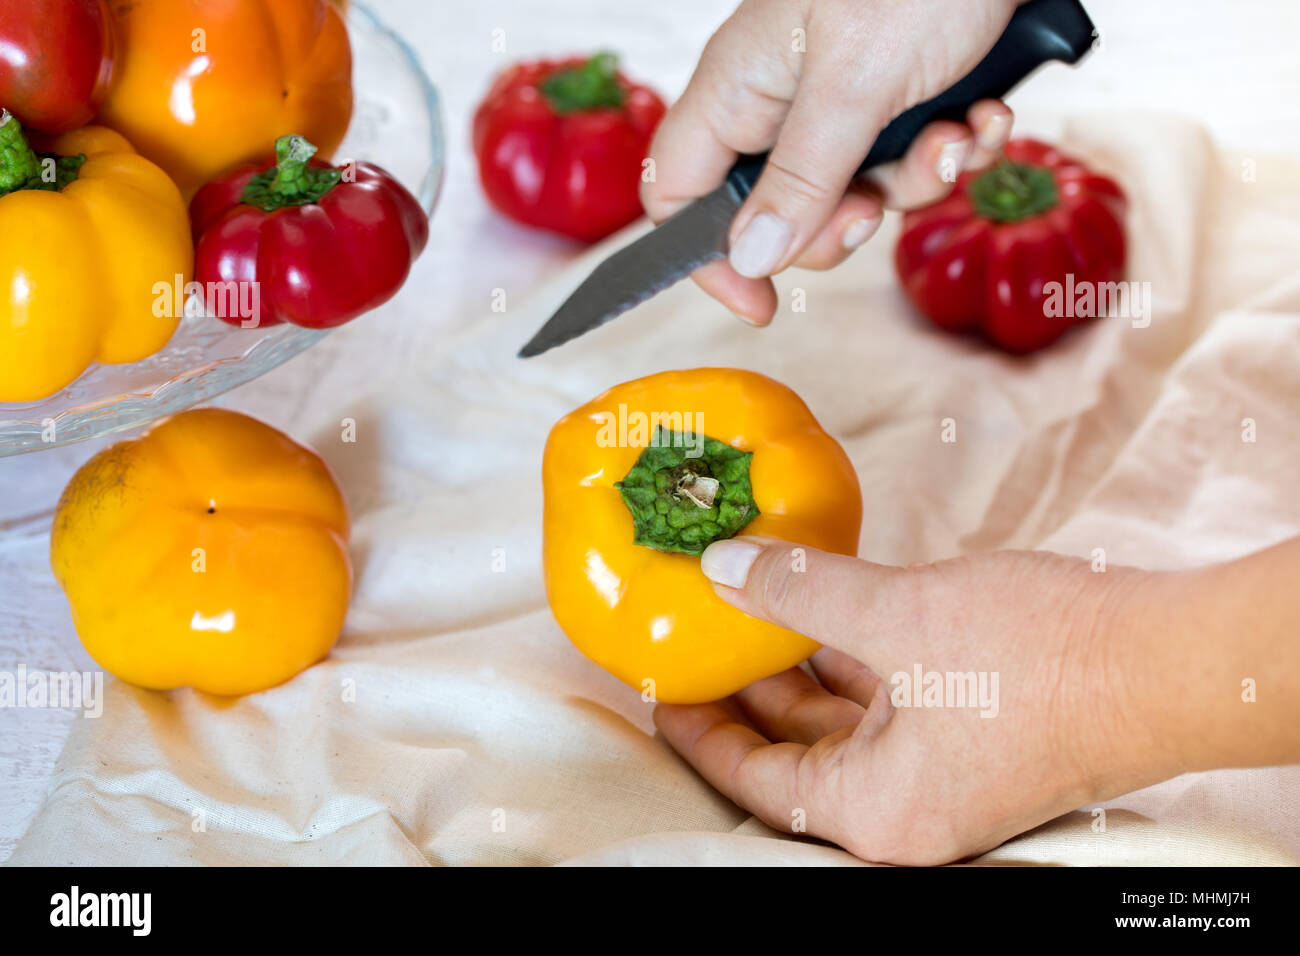 Woman hand with knife seeding tomato peppers. - Stock Image